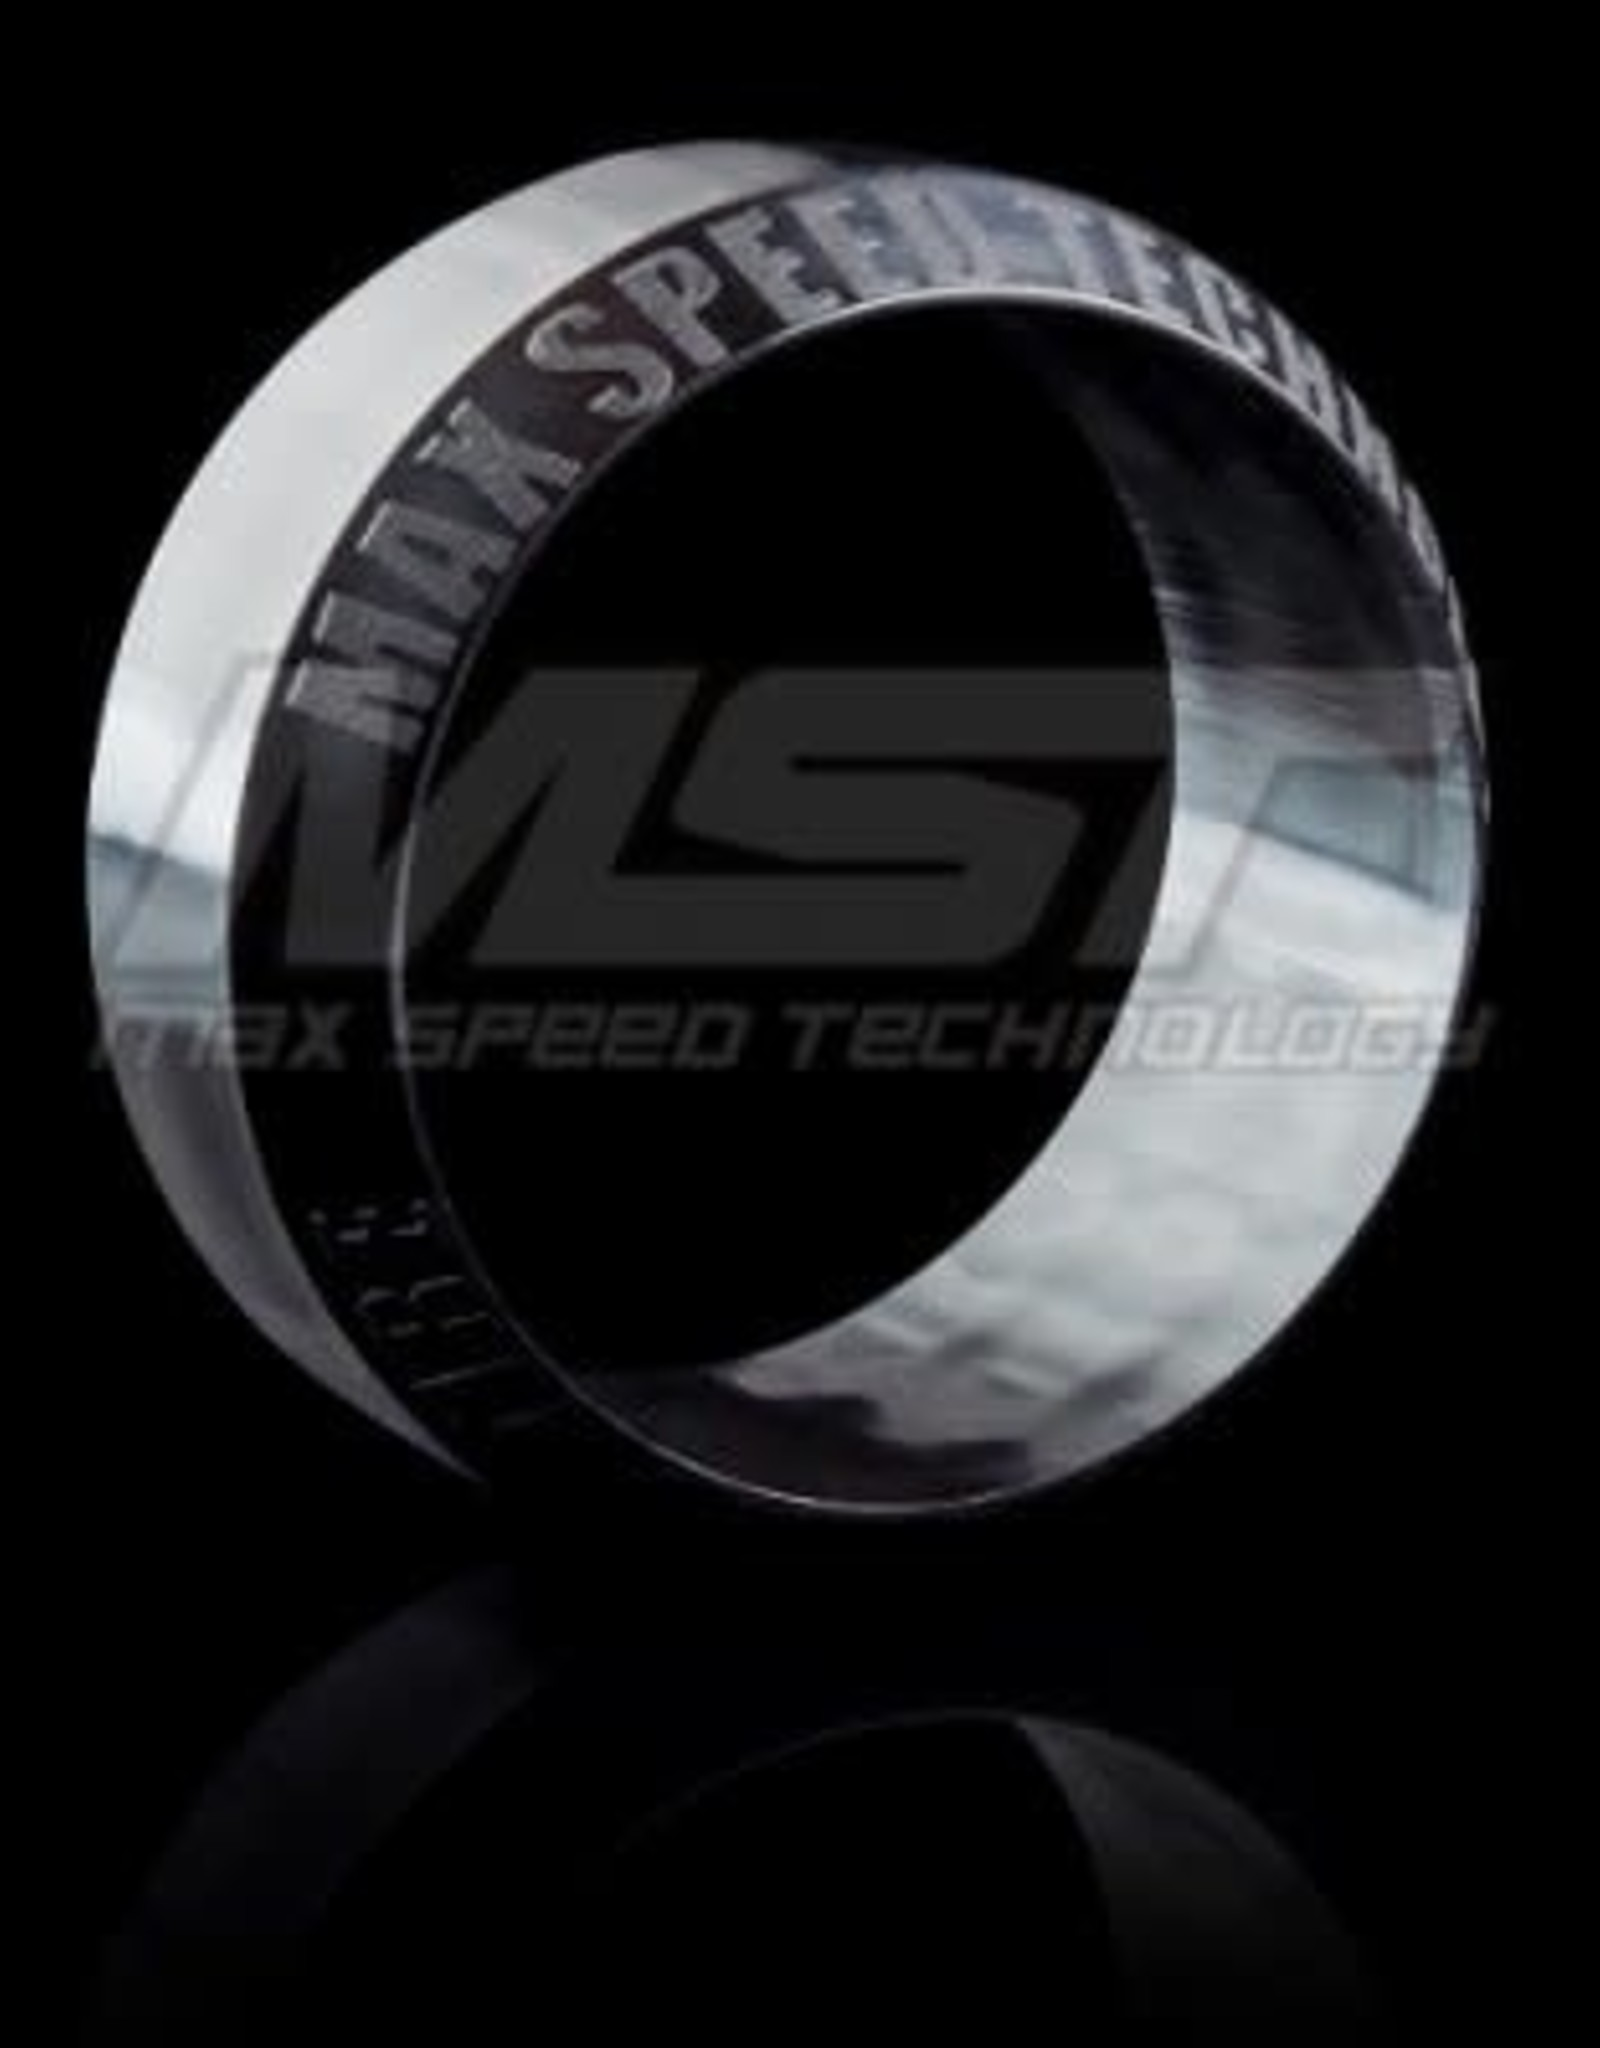 MST MXPD101020 GA26 tire (hard) (4) by MST